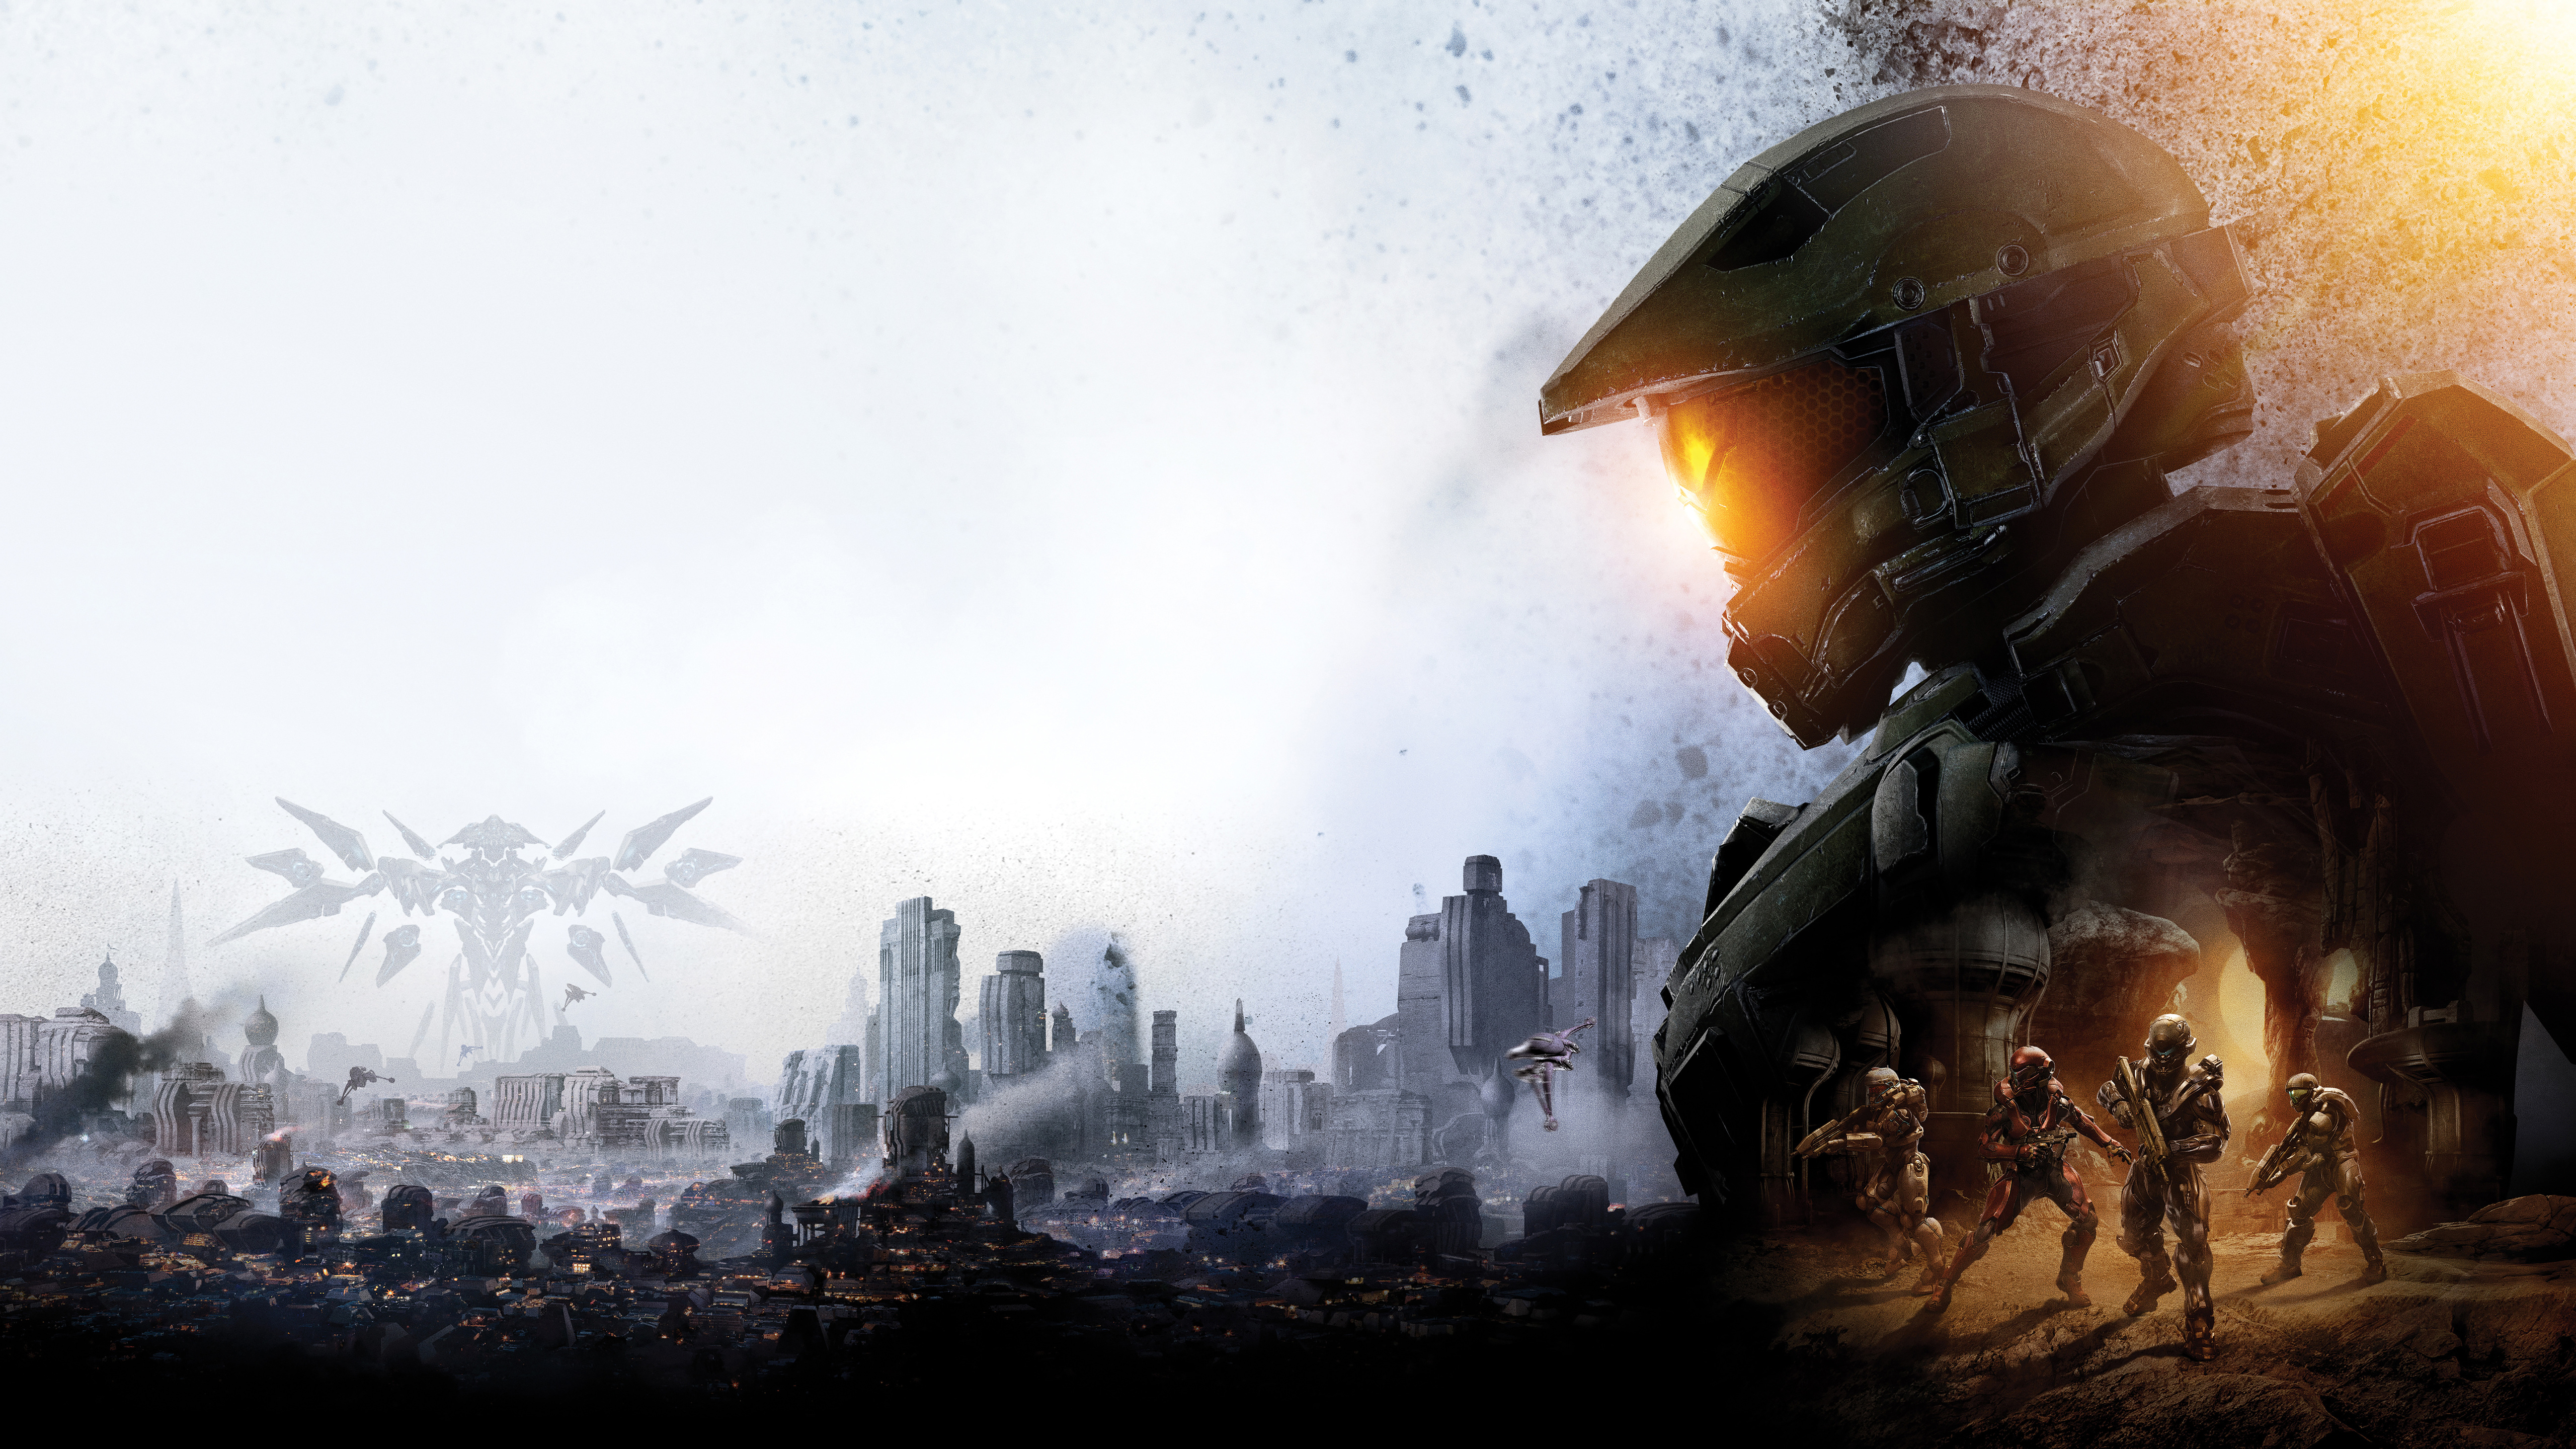 5120x2880 Master Chief Halo 5 8k 5k Hd 4k Wallpapers Images